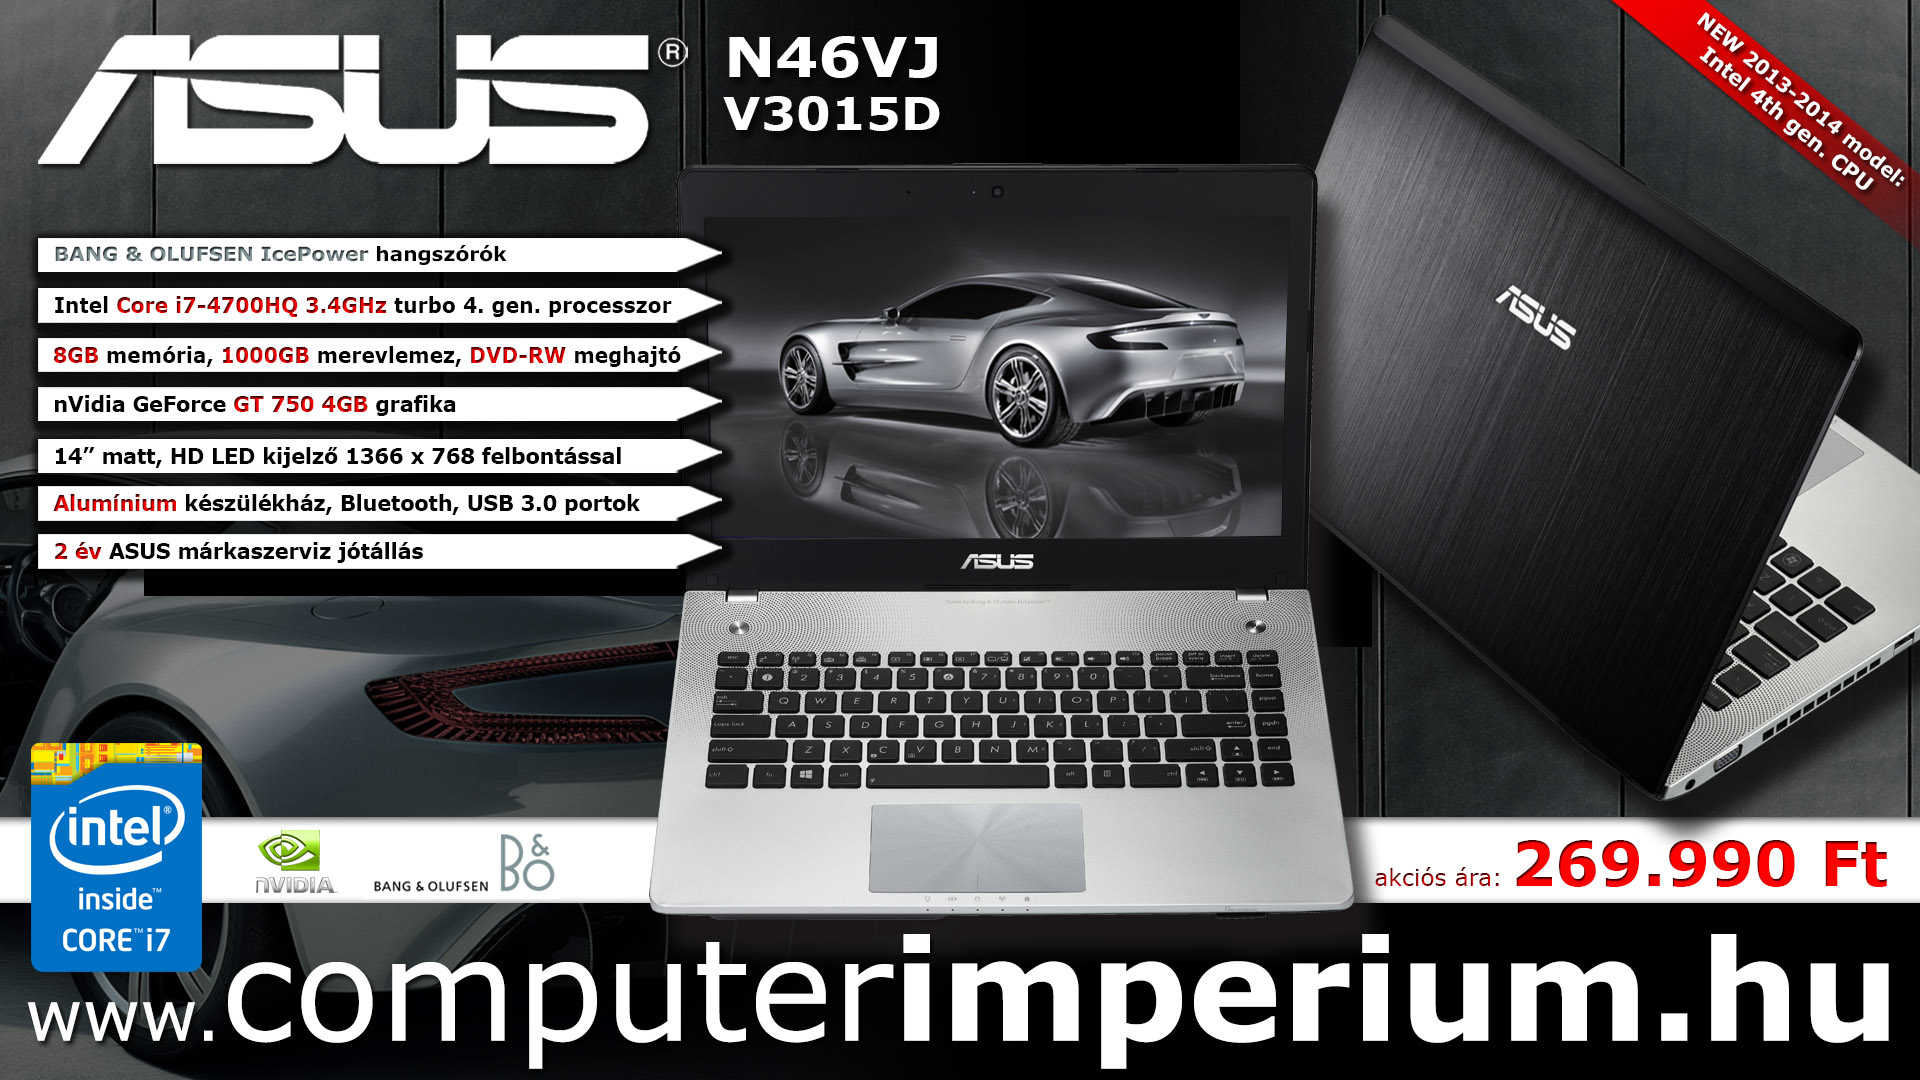 ASUS N46JV-V3015D notebook, laptop (N46JV-V3015D_8GB), 8GB RAM-mal!!!